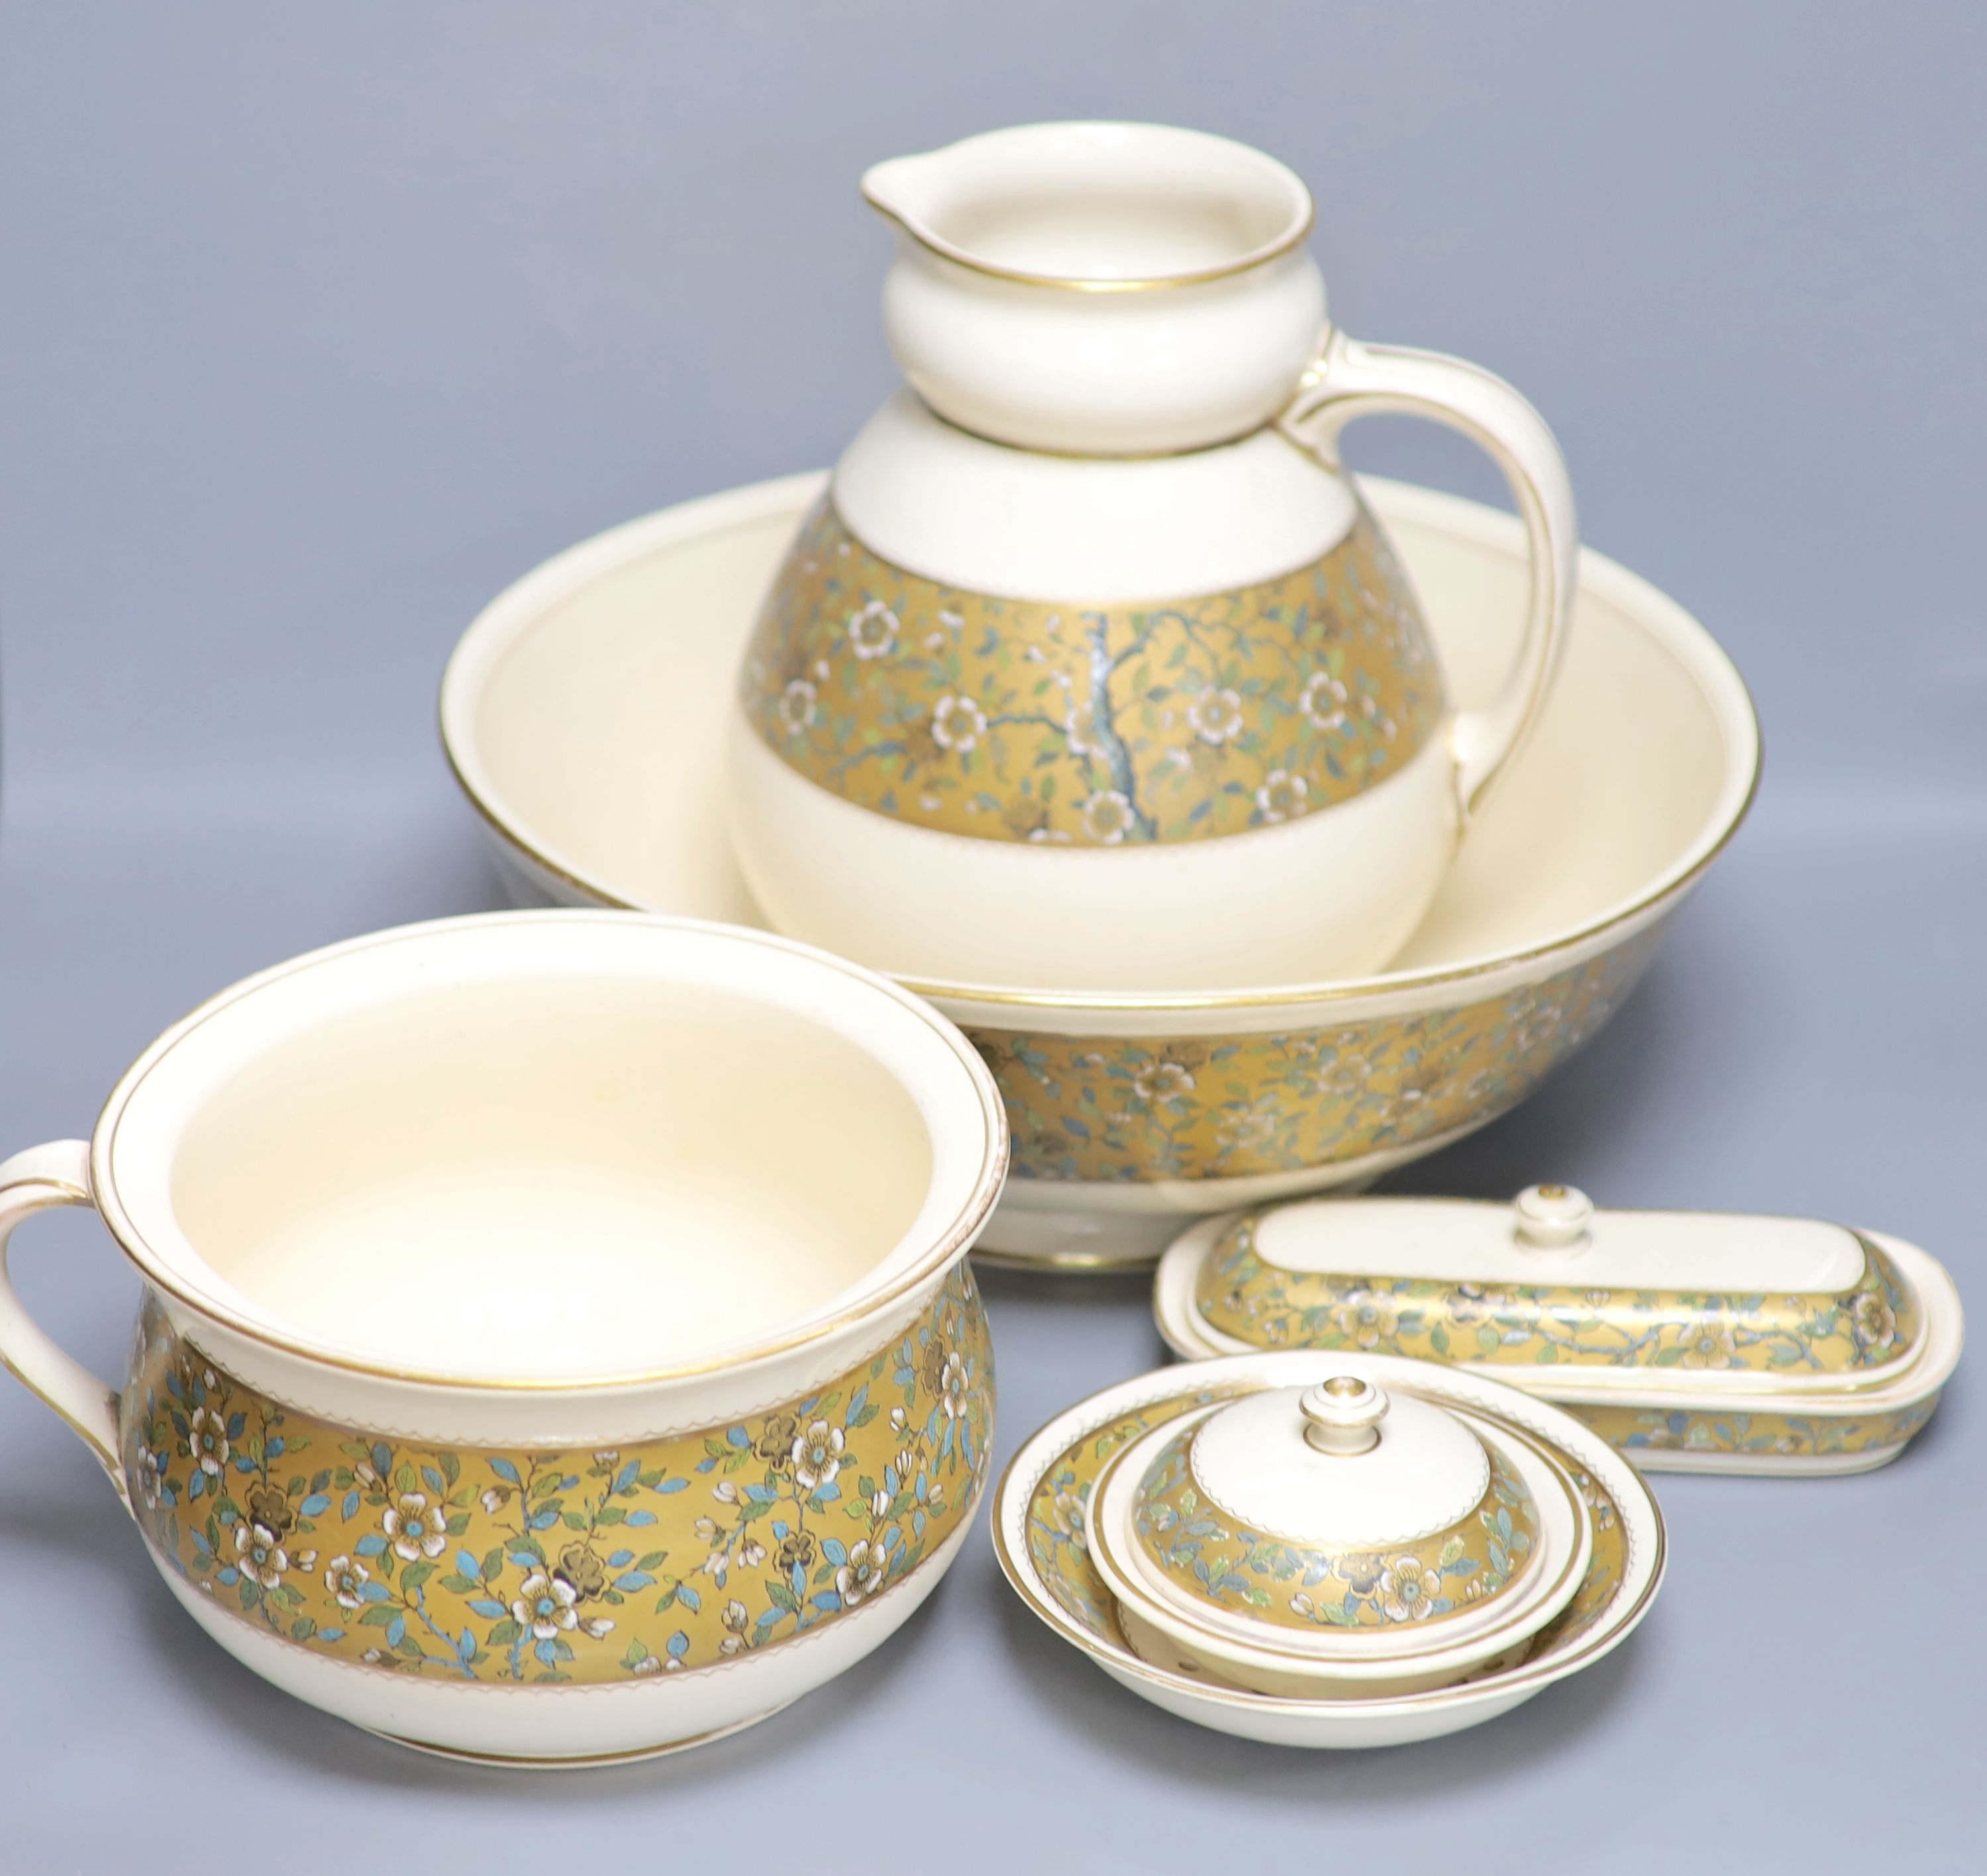 A Doulton Aesthetic period pottery washstand set, jug 27cm